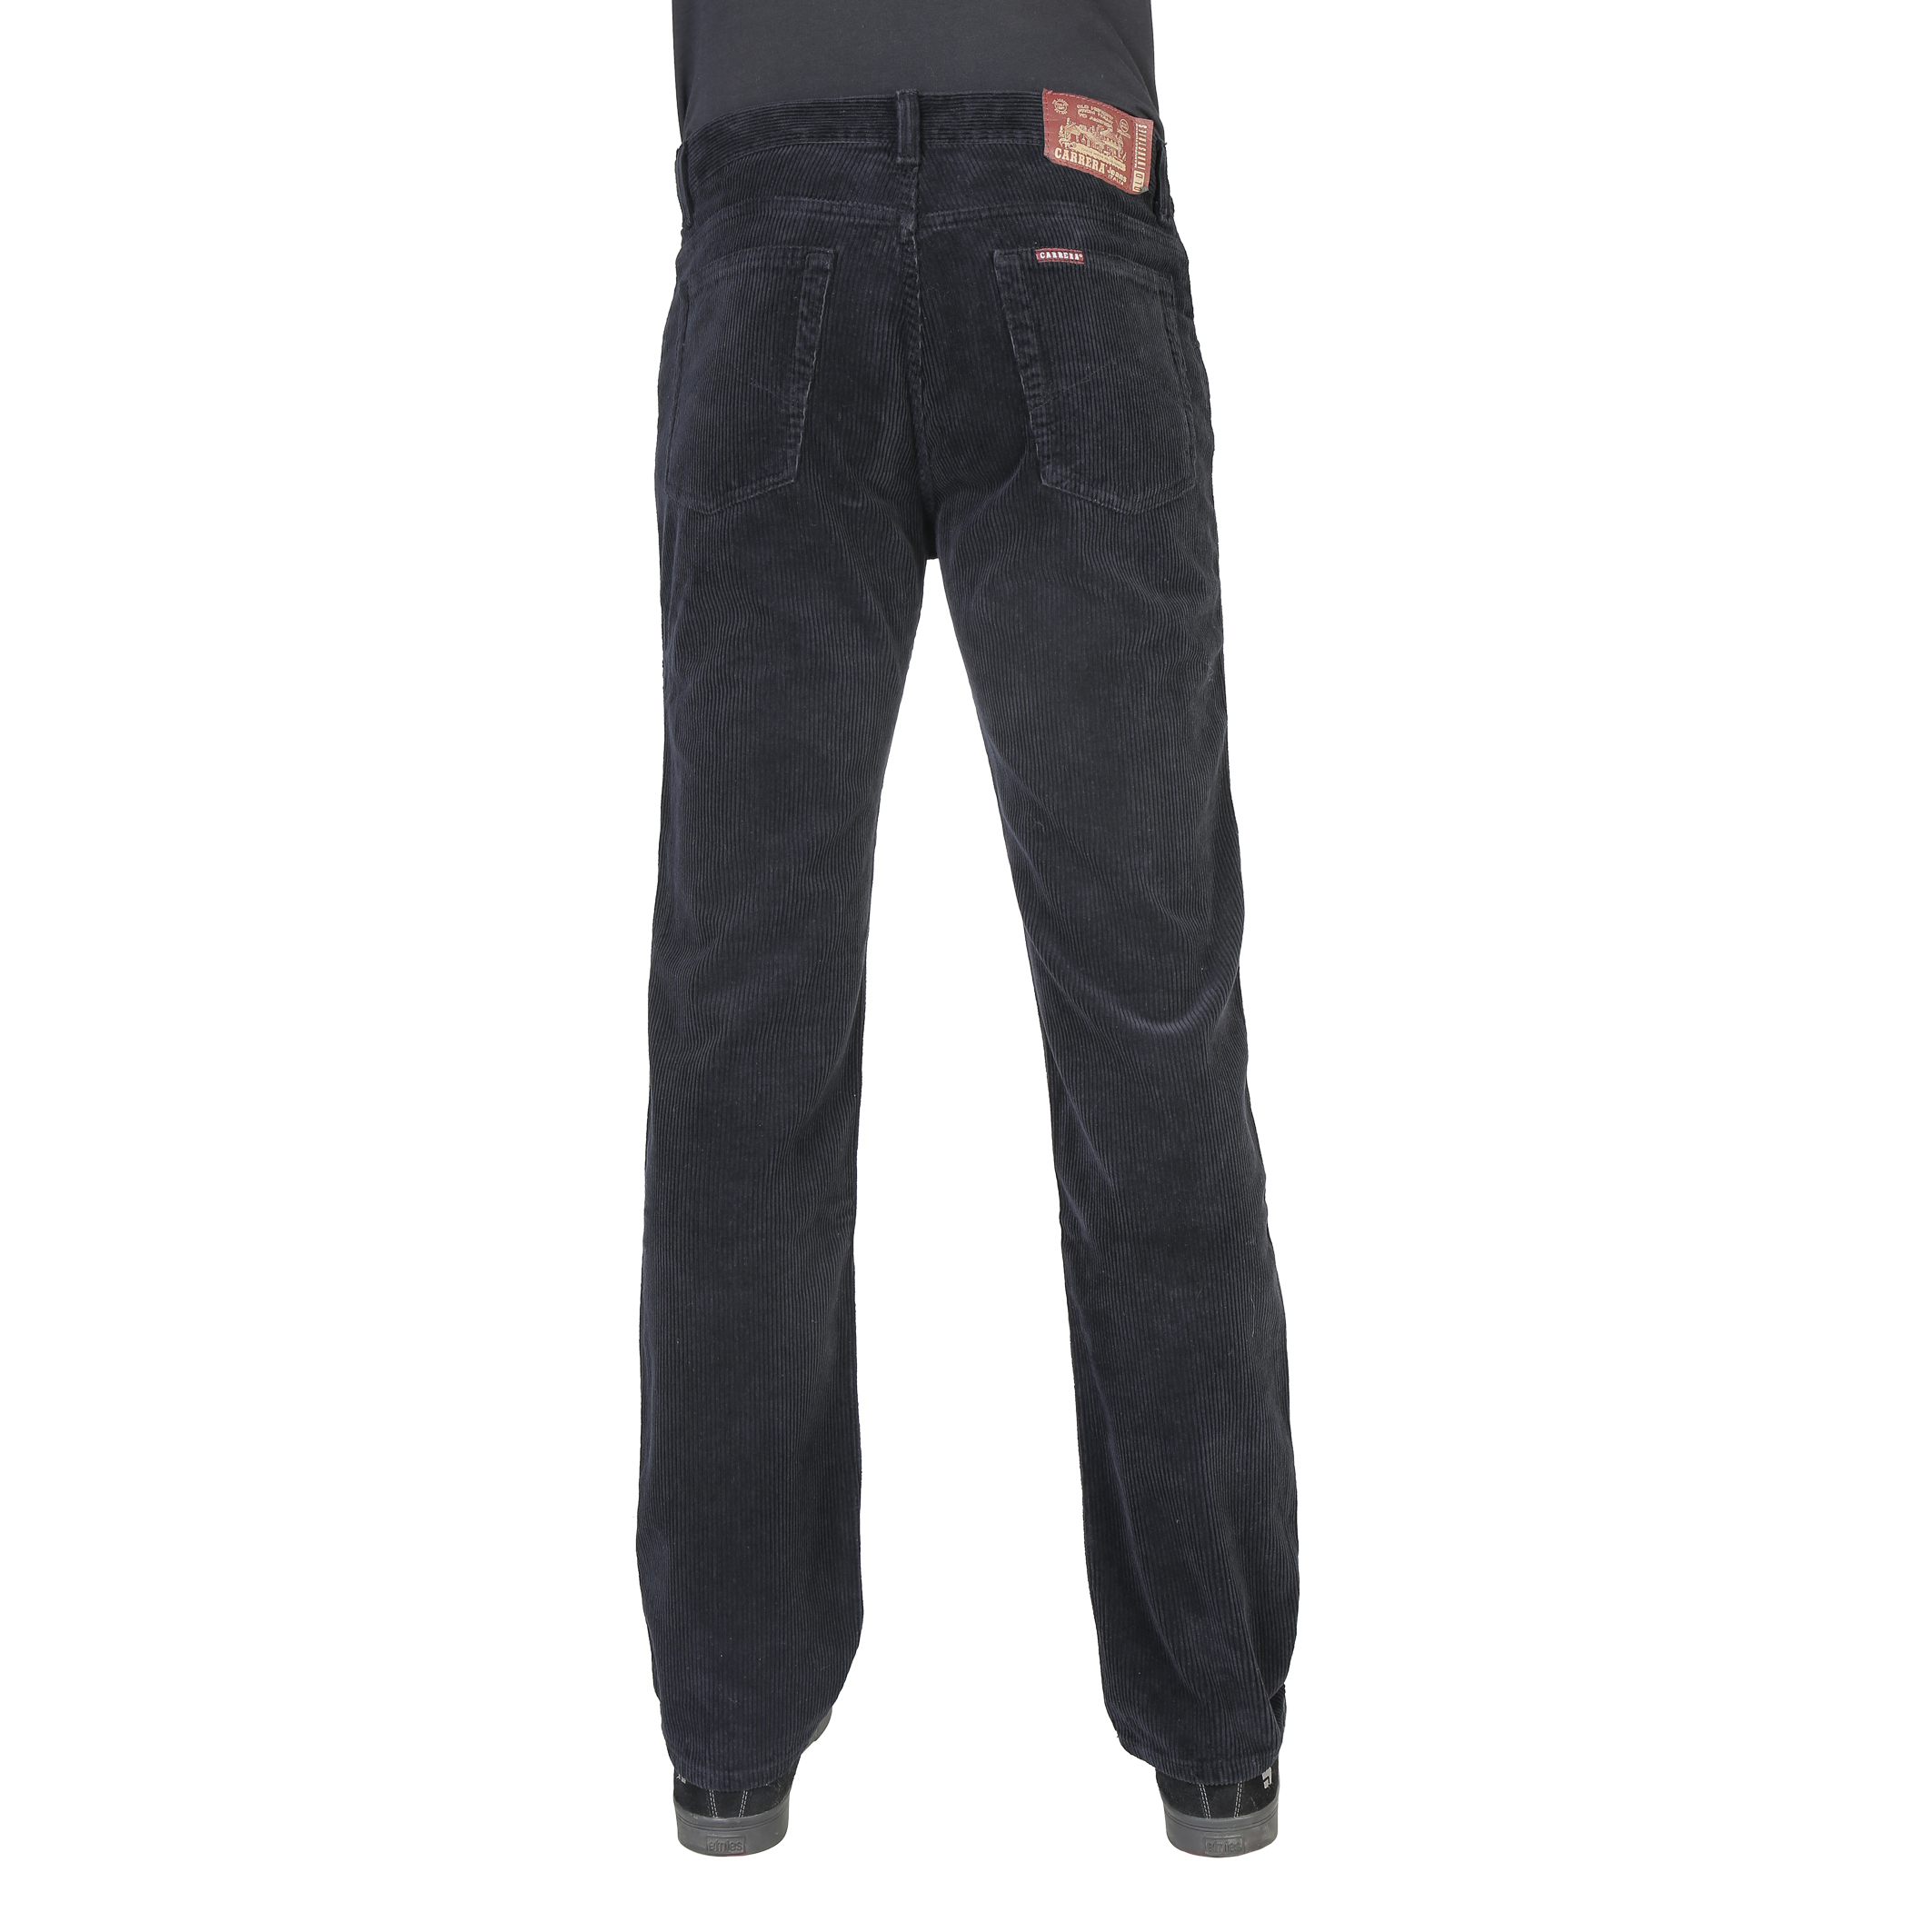 Jeans  Carrera Jeans 000700_1051A blue